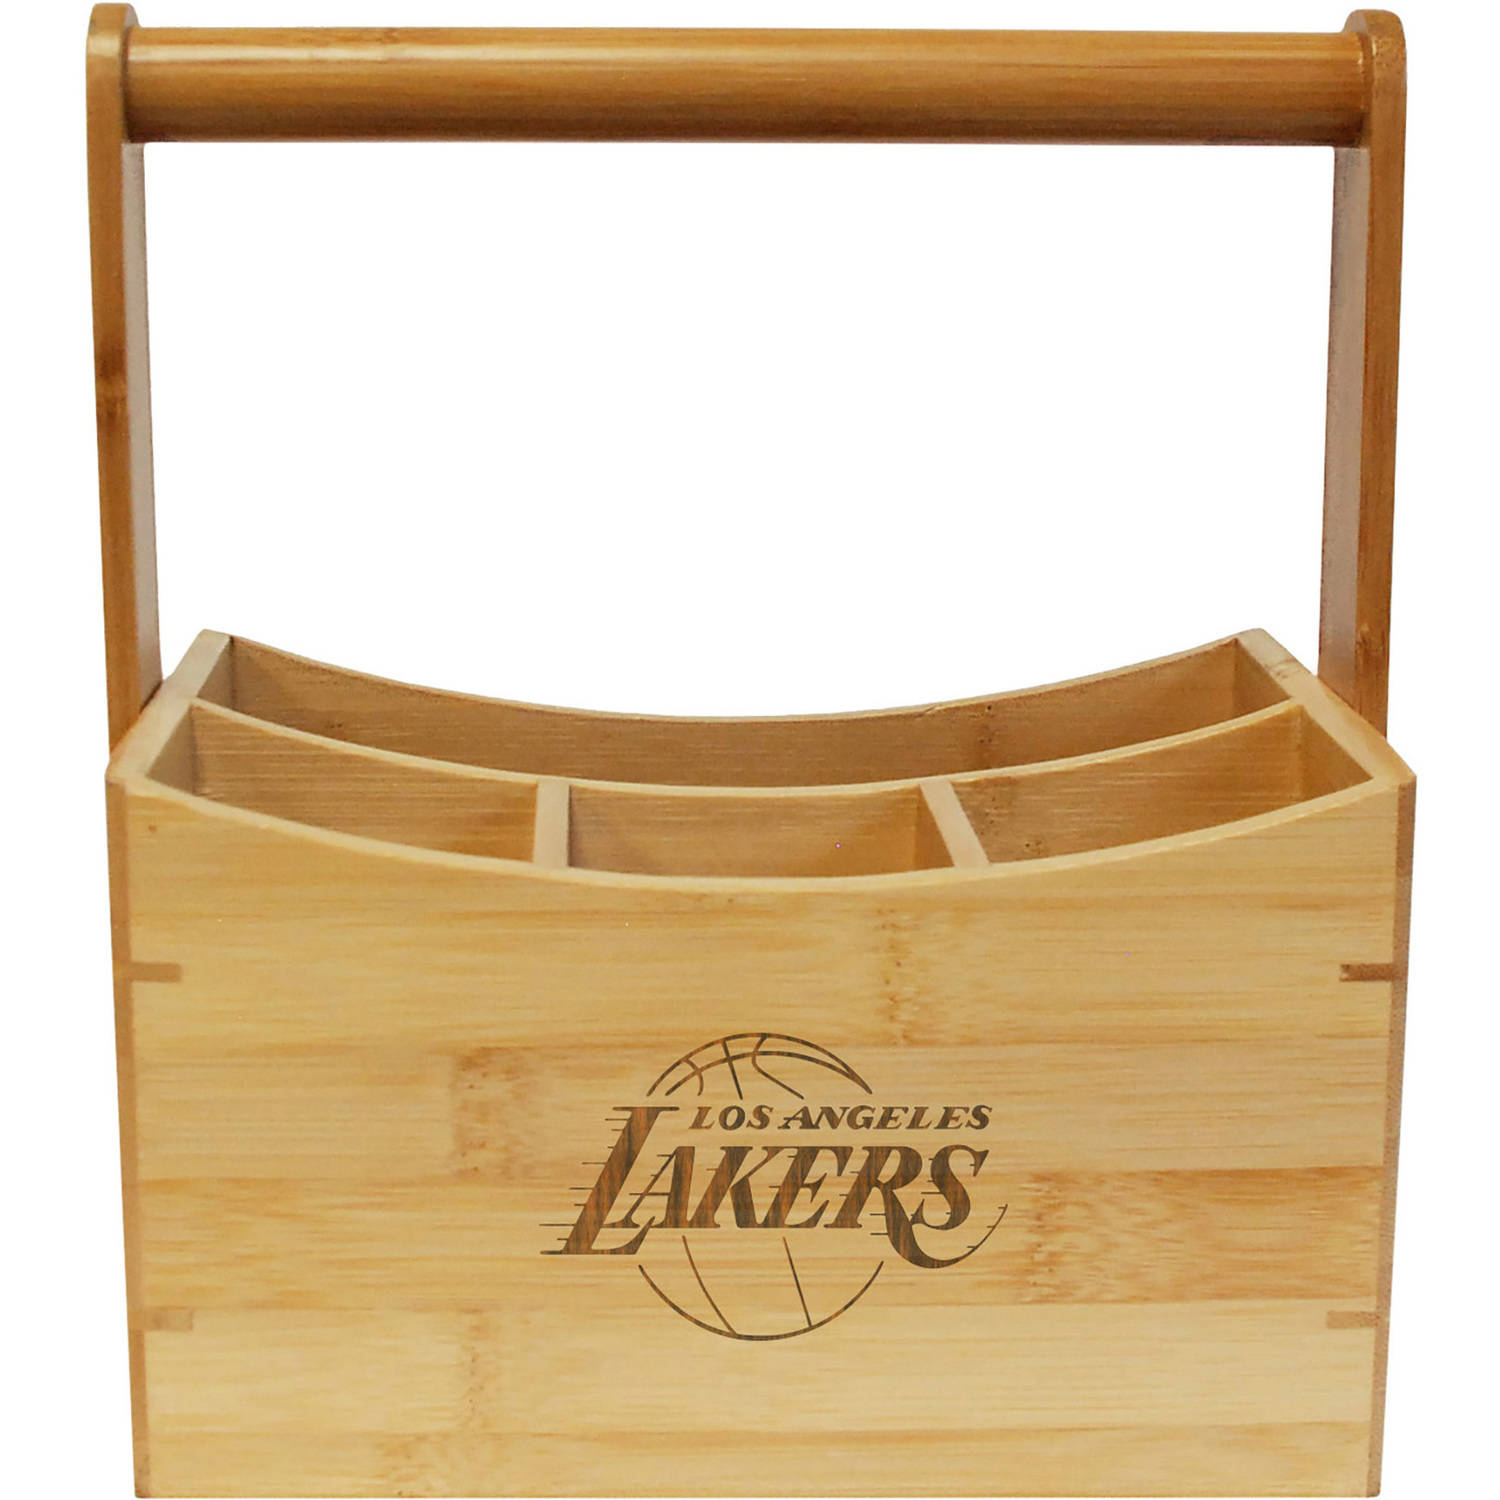 NBA Team Engraved Utensil Caddy by